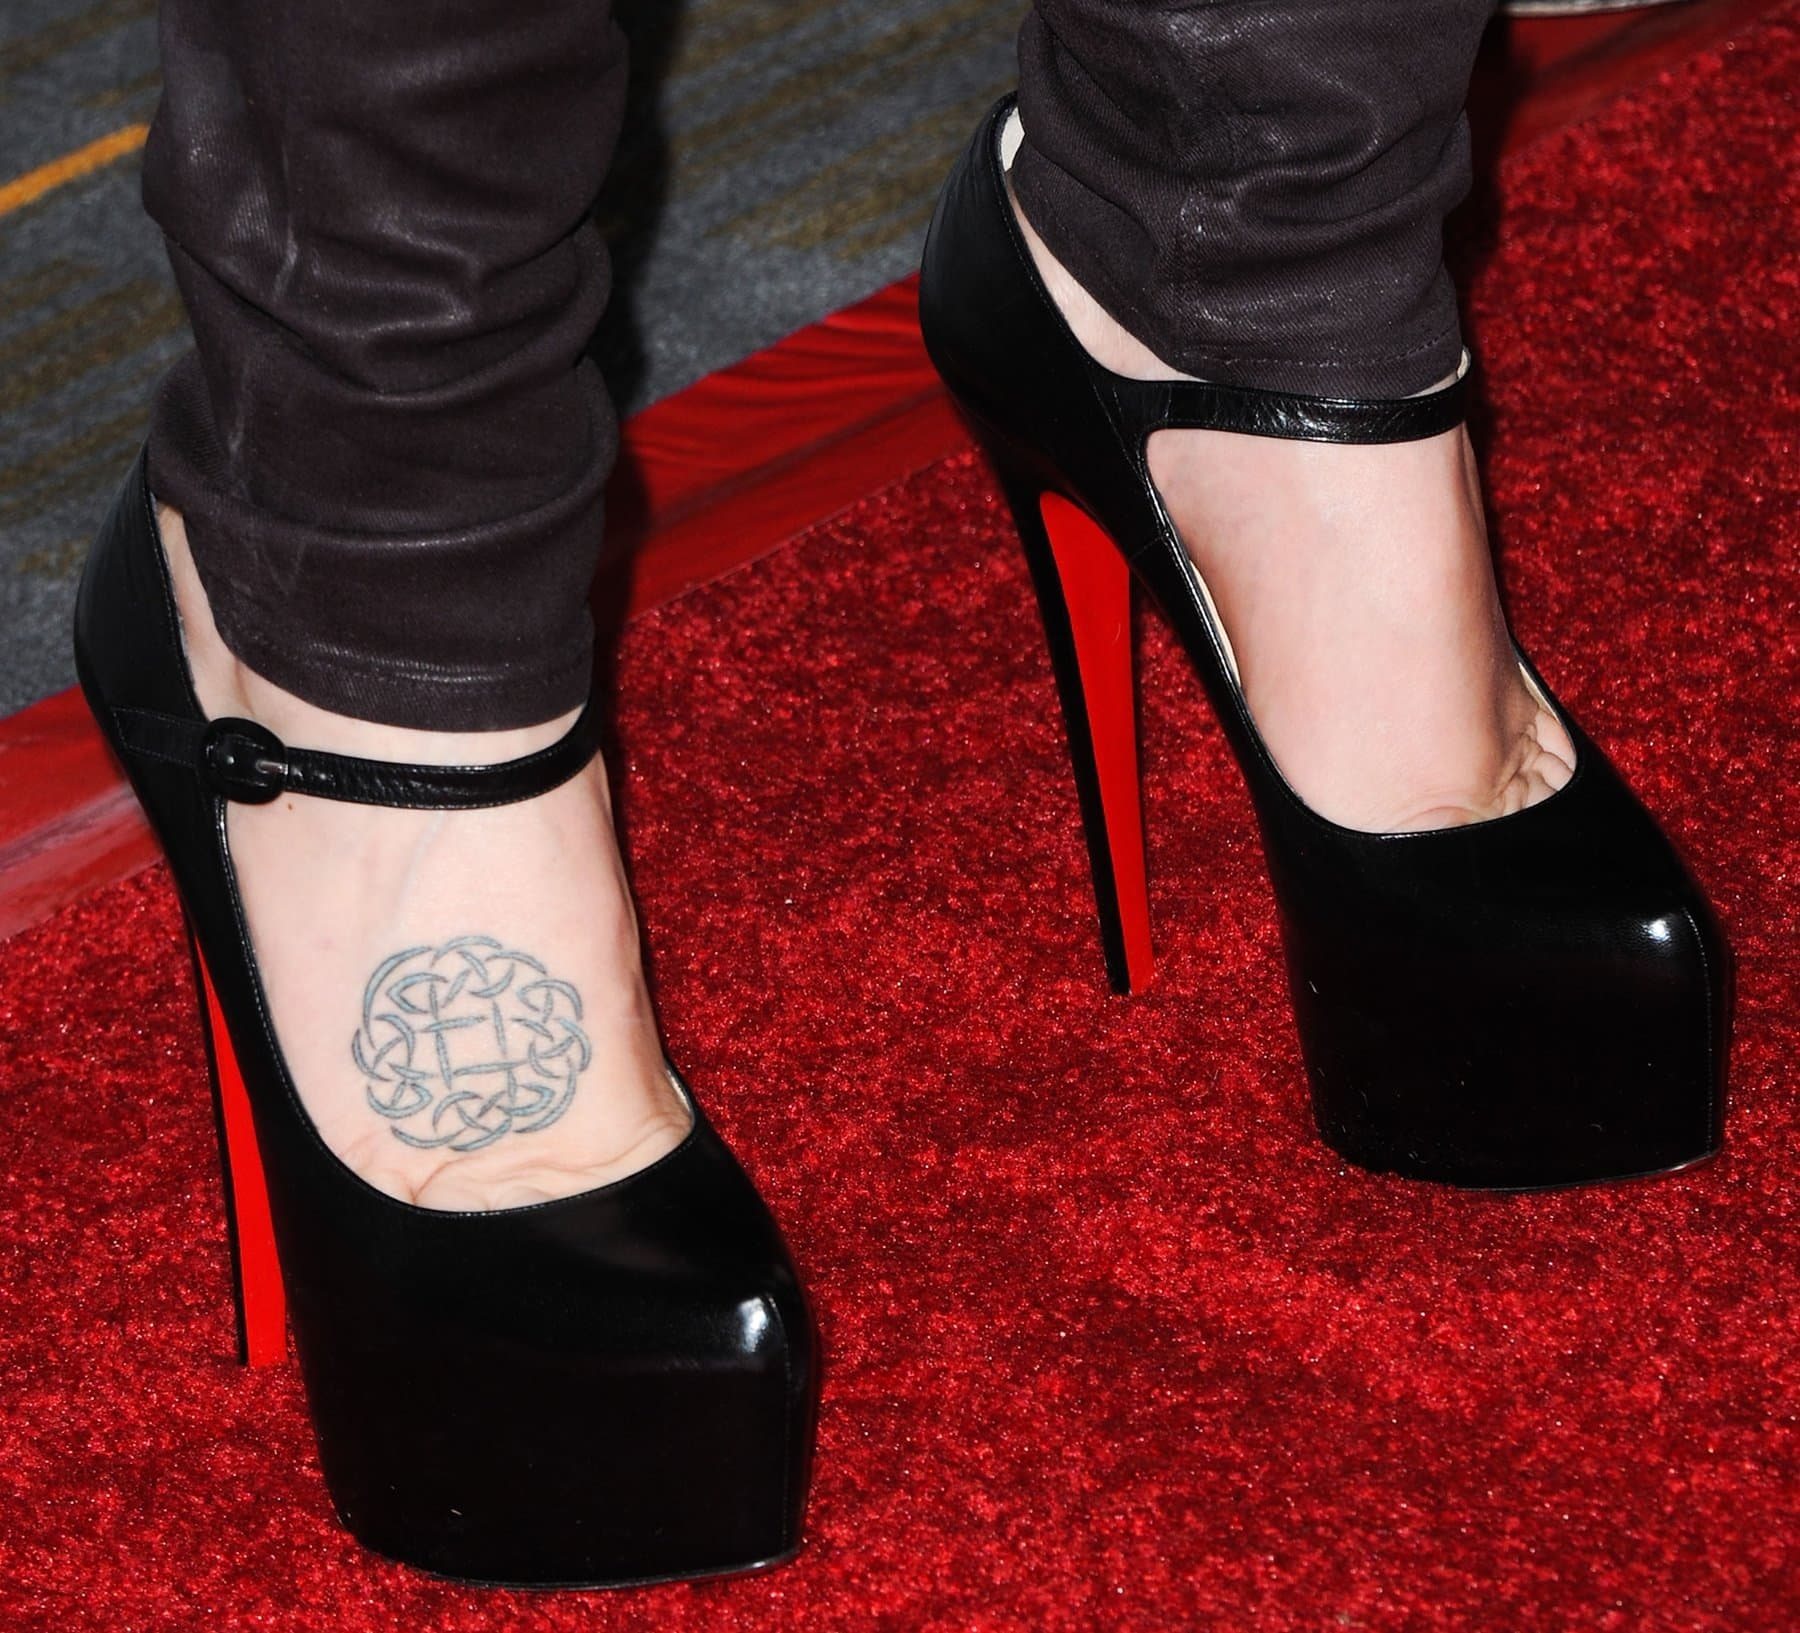 Lisa Marie Presley shows off her Celtic eternity knot foot tattoo in Christian Louboutin heels